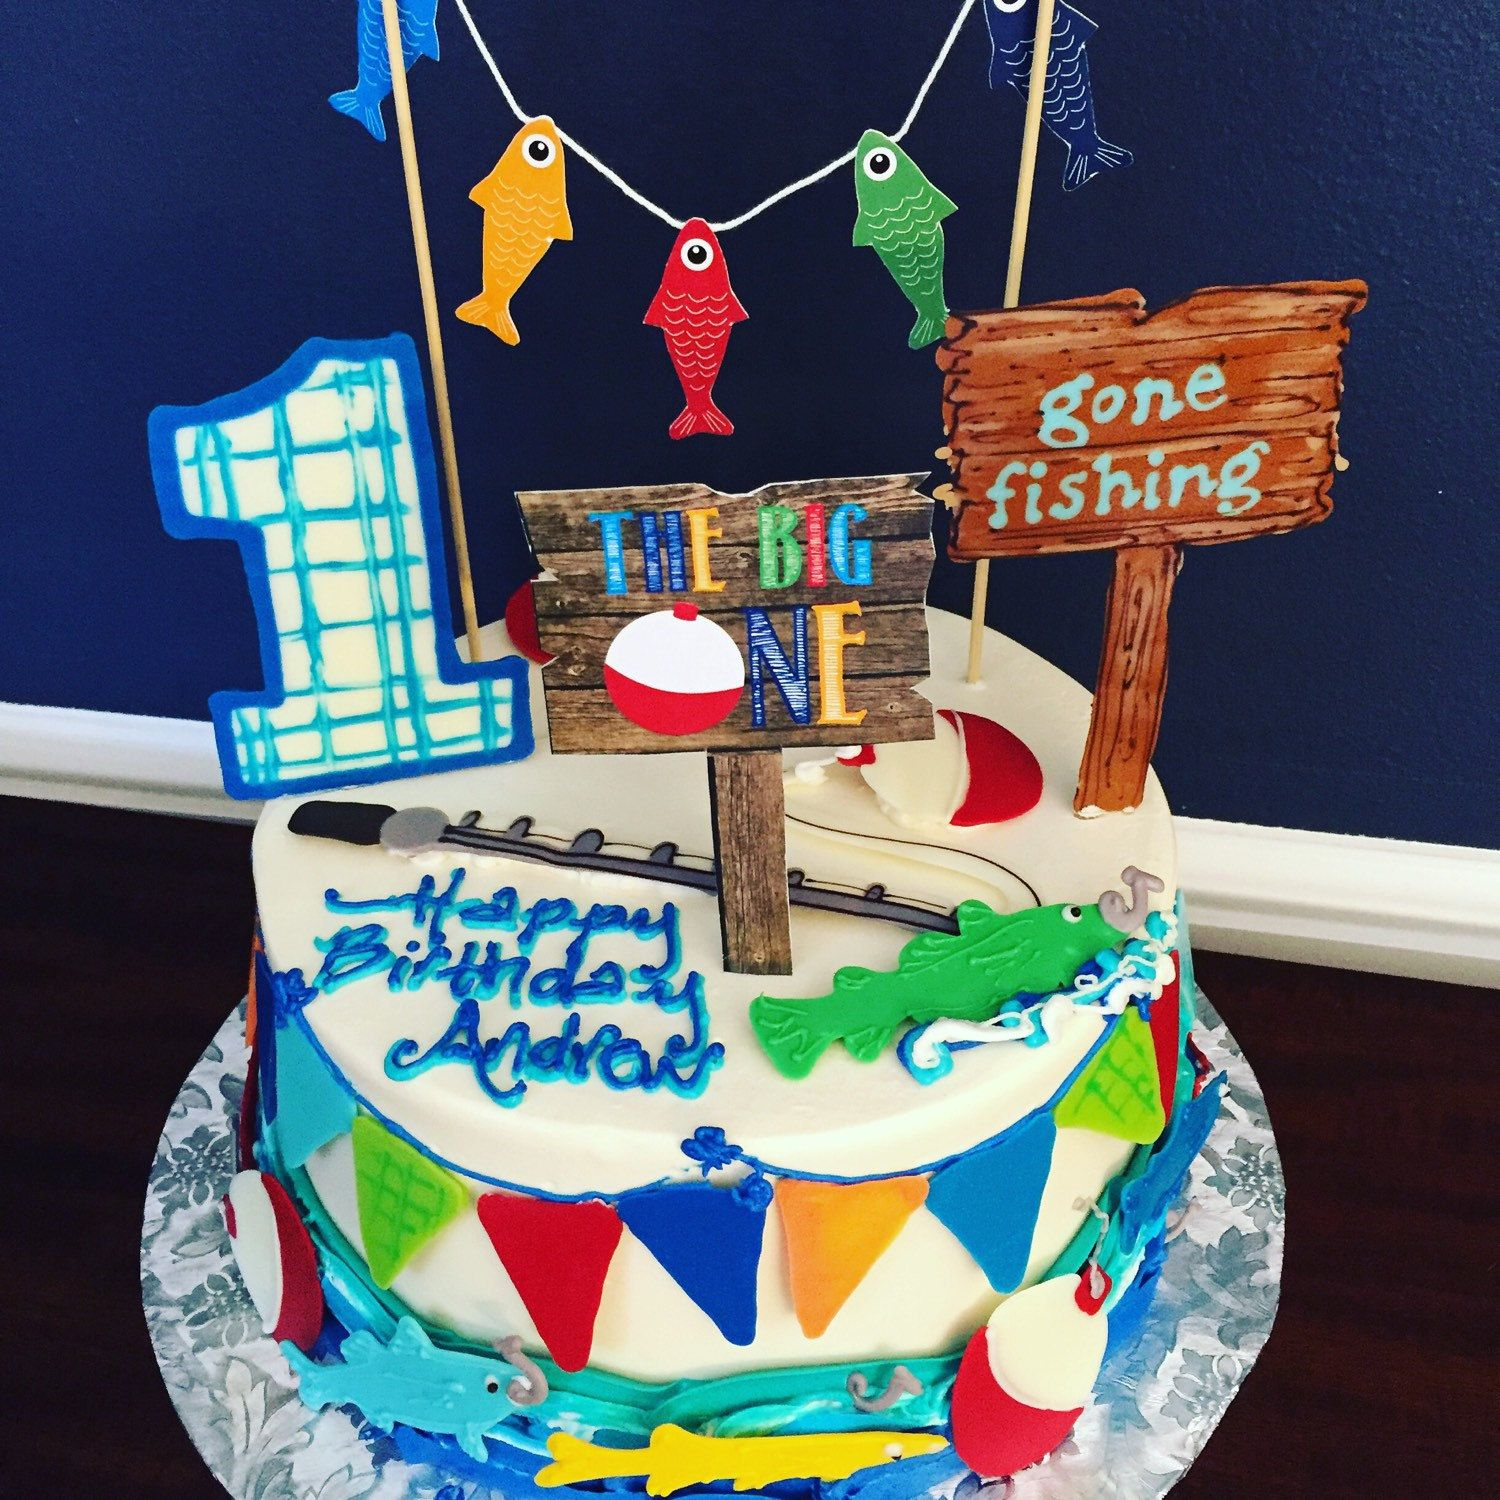 This fishing cake is so adorable Gone Fishing Cake Topper